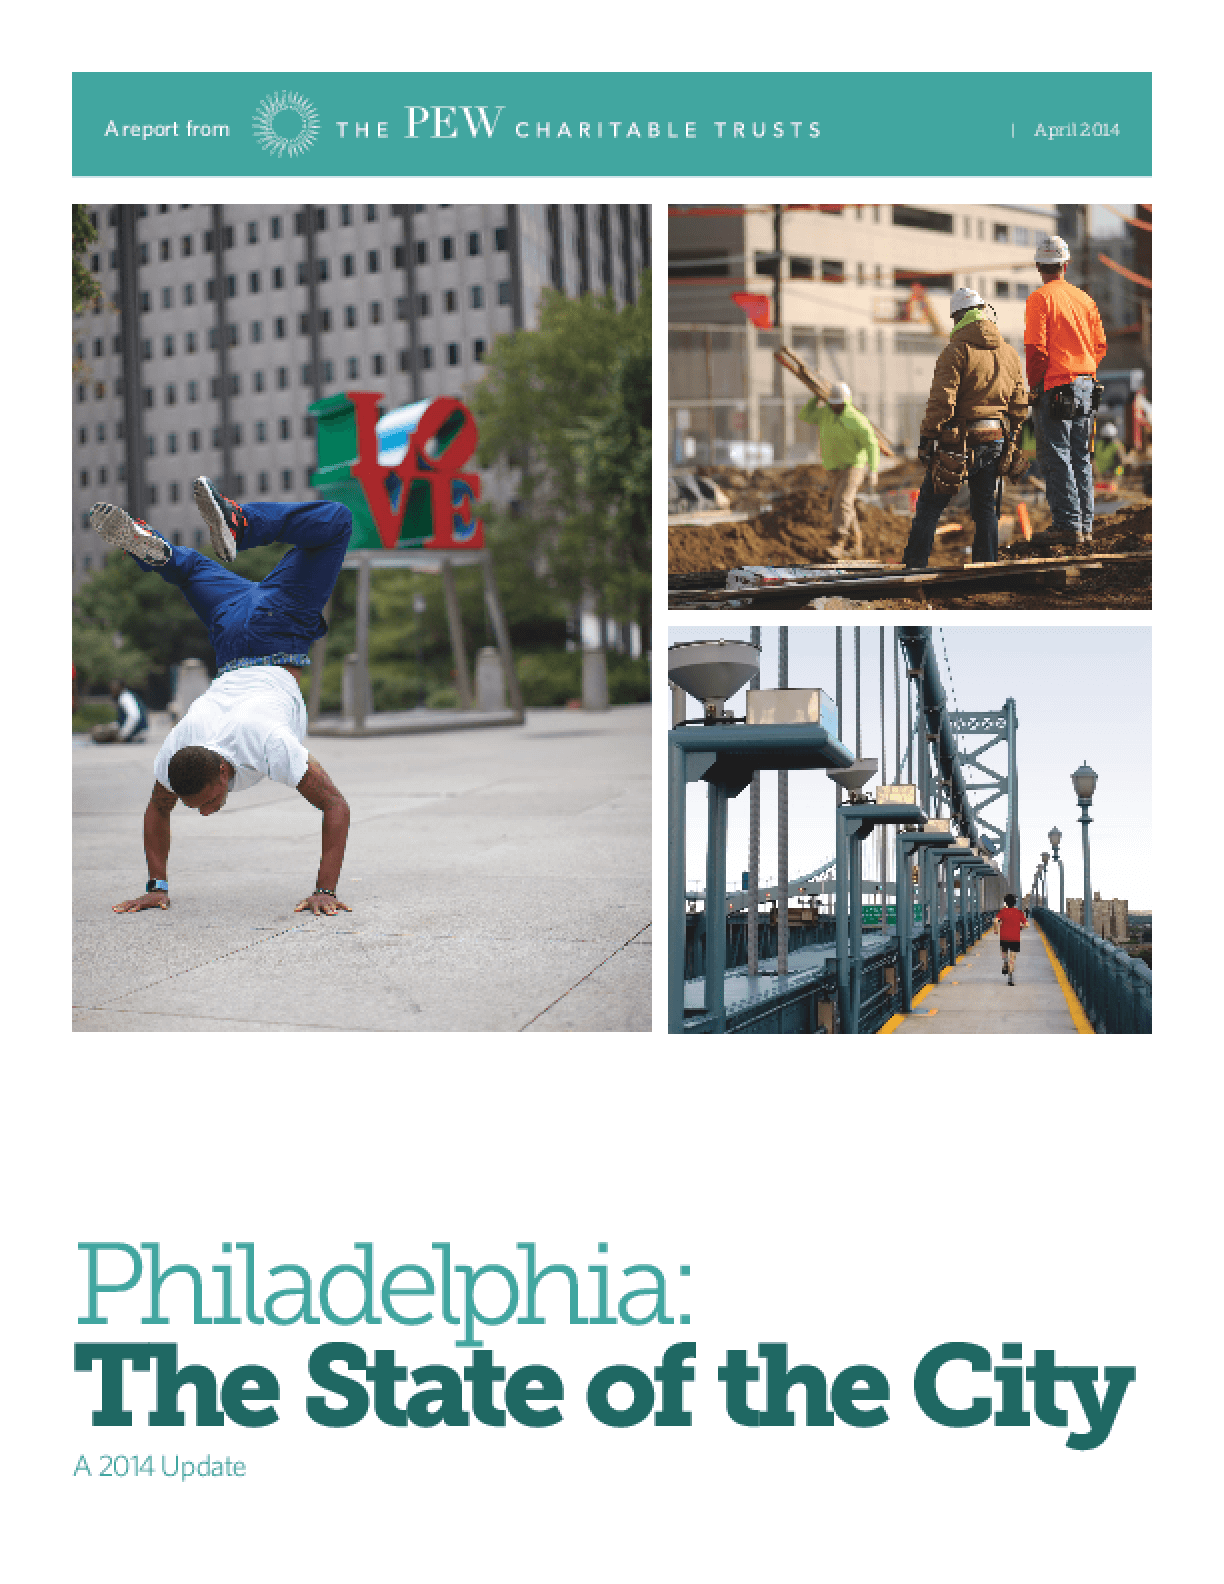 Philadelphia: The State of the City, A 2014 Update